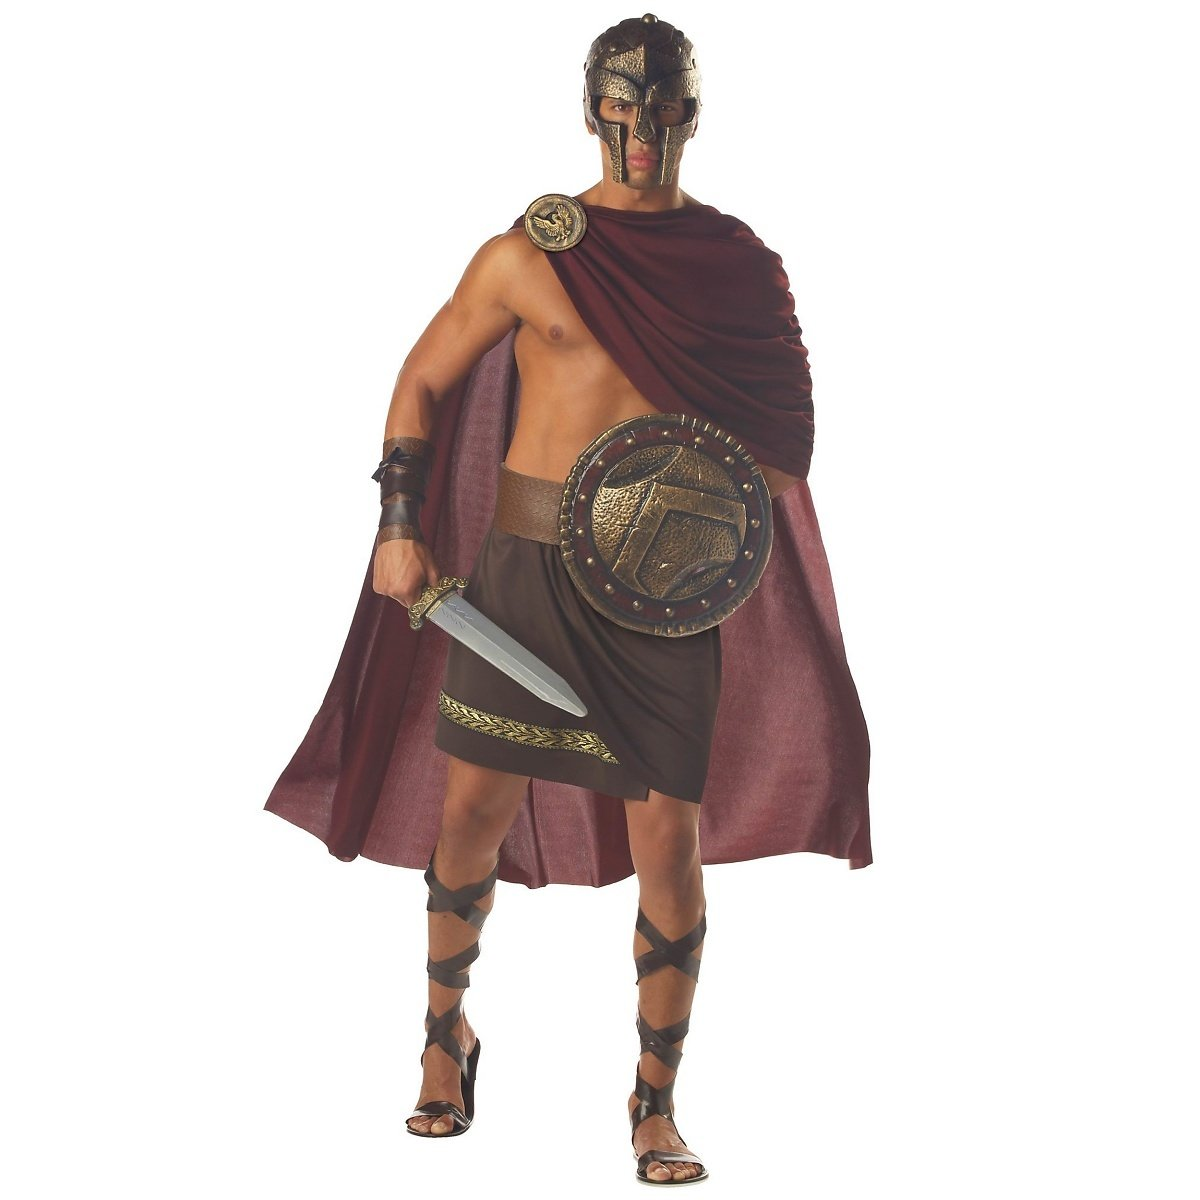 Spartan Warrior Menu0027s Fancy Dress Greek Roman Spartacus Costume Adult Outfit (Men 40/42) Amazon.co.uk Toys u0026 Games  sc 1 st  Amazon UK & Spartan Warrior Menu0027s Fancy Dress Greek Roman Spartacus Costume ...